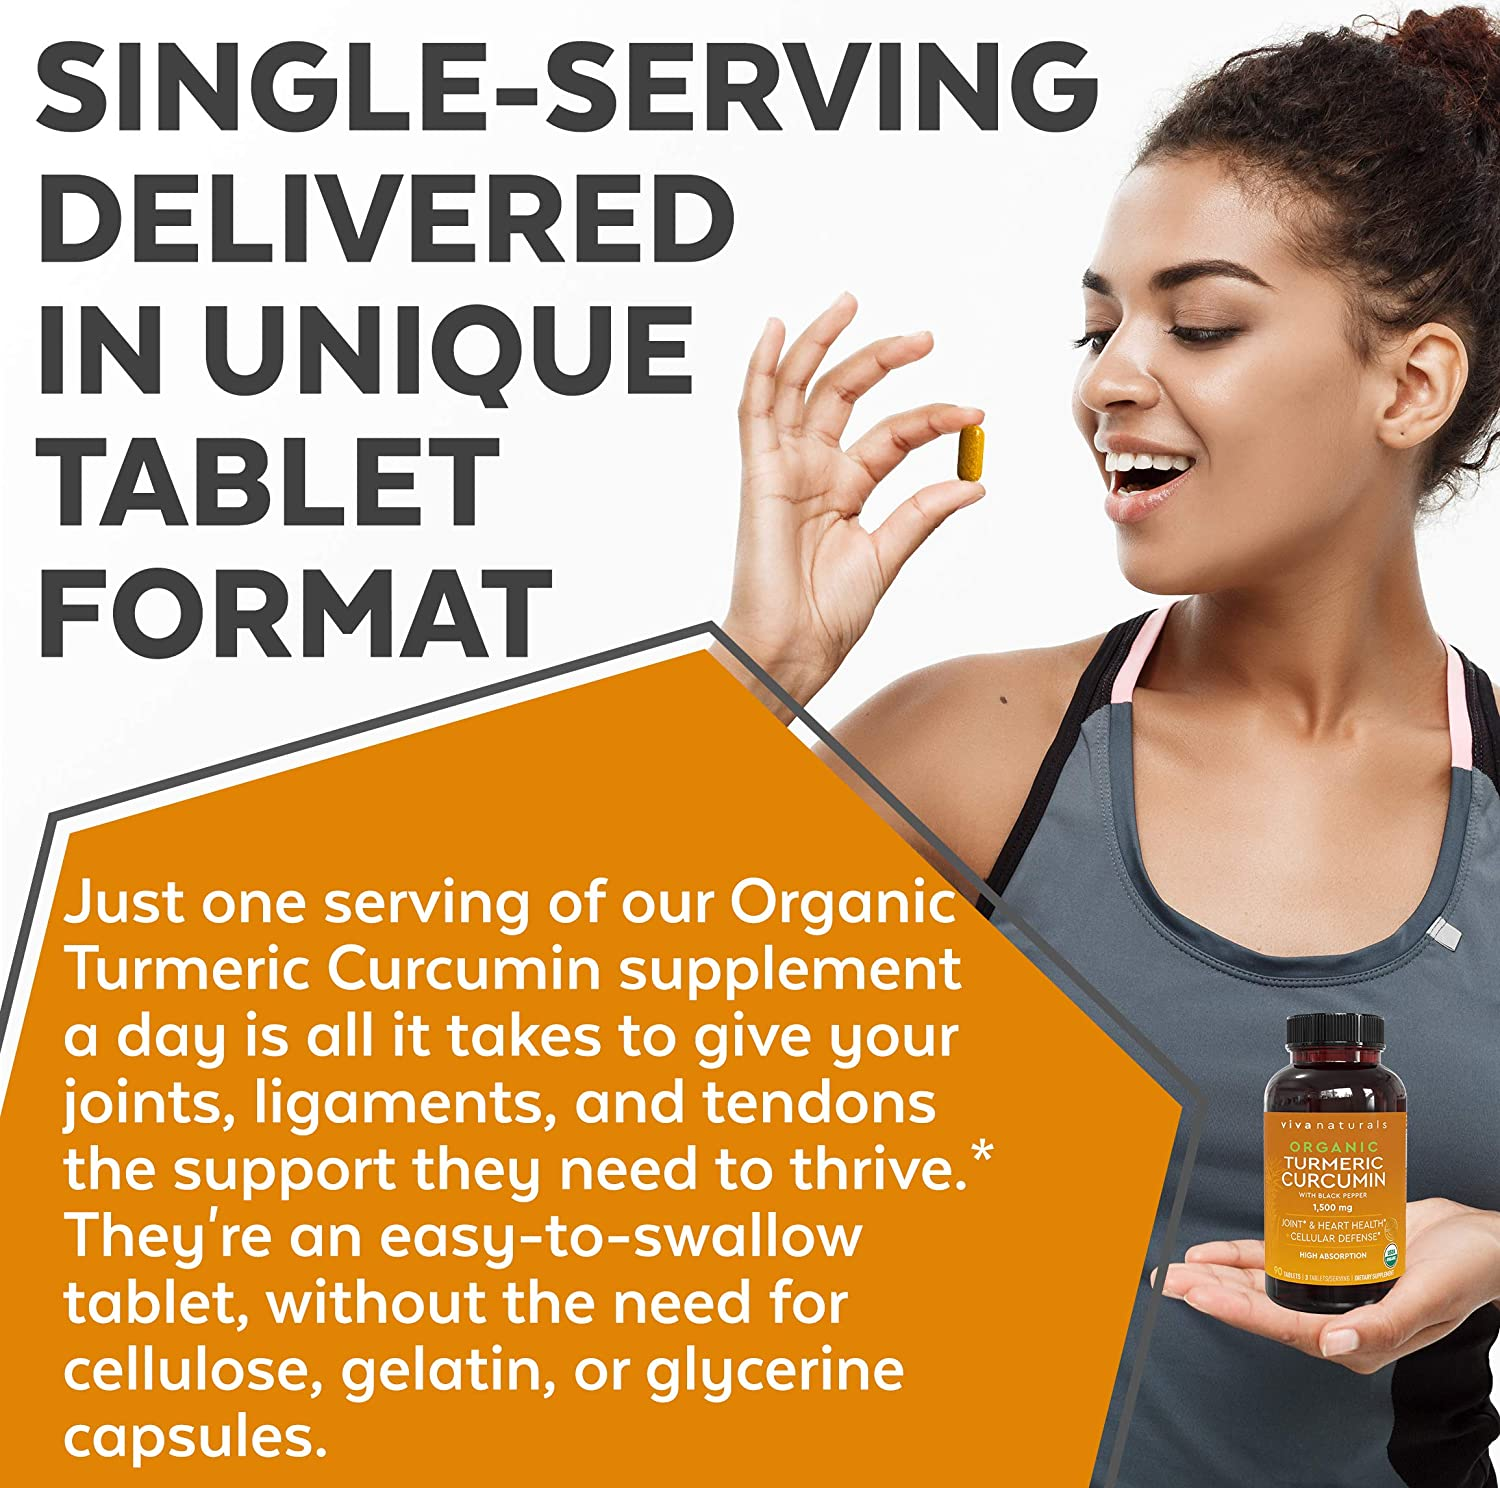 Organic Turmeric Curcumin Supplements with Black Pepper for Better Absorption   1500mg High Potency Turmeric Pills Organic for Joint Support, Joint Supplements for Men & Women, 90 Tablets.: Health & Personal Care